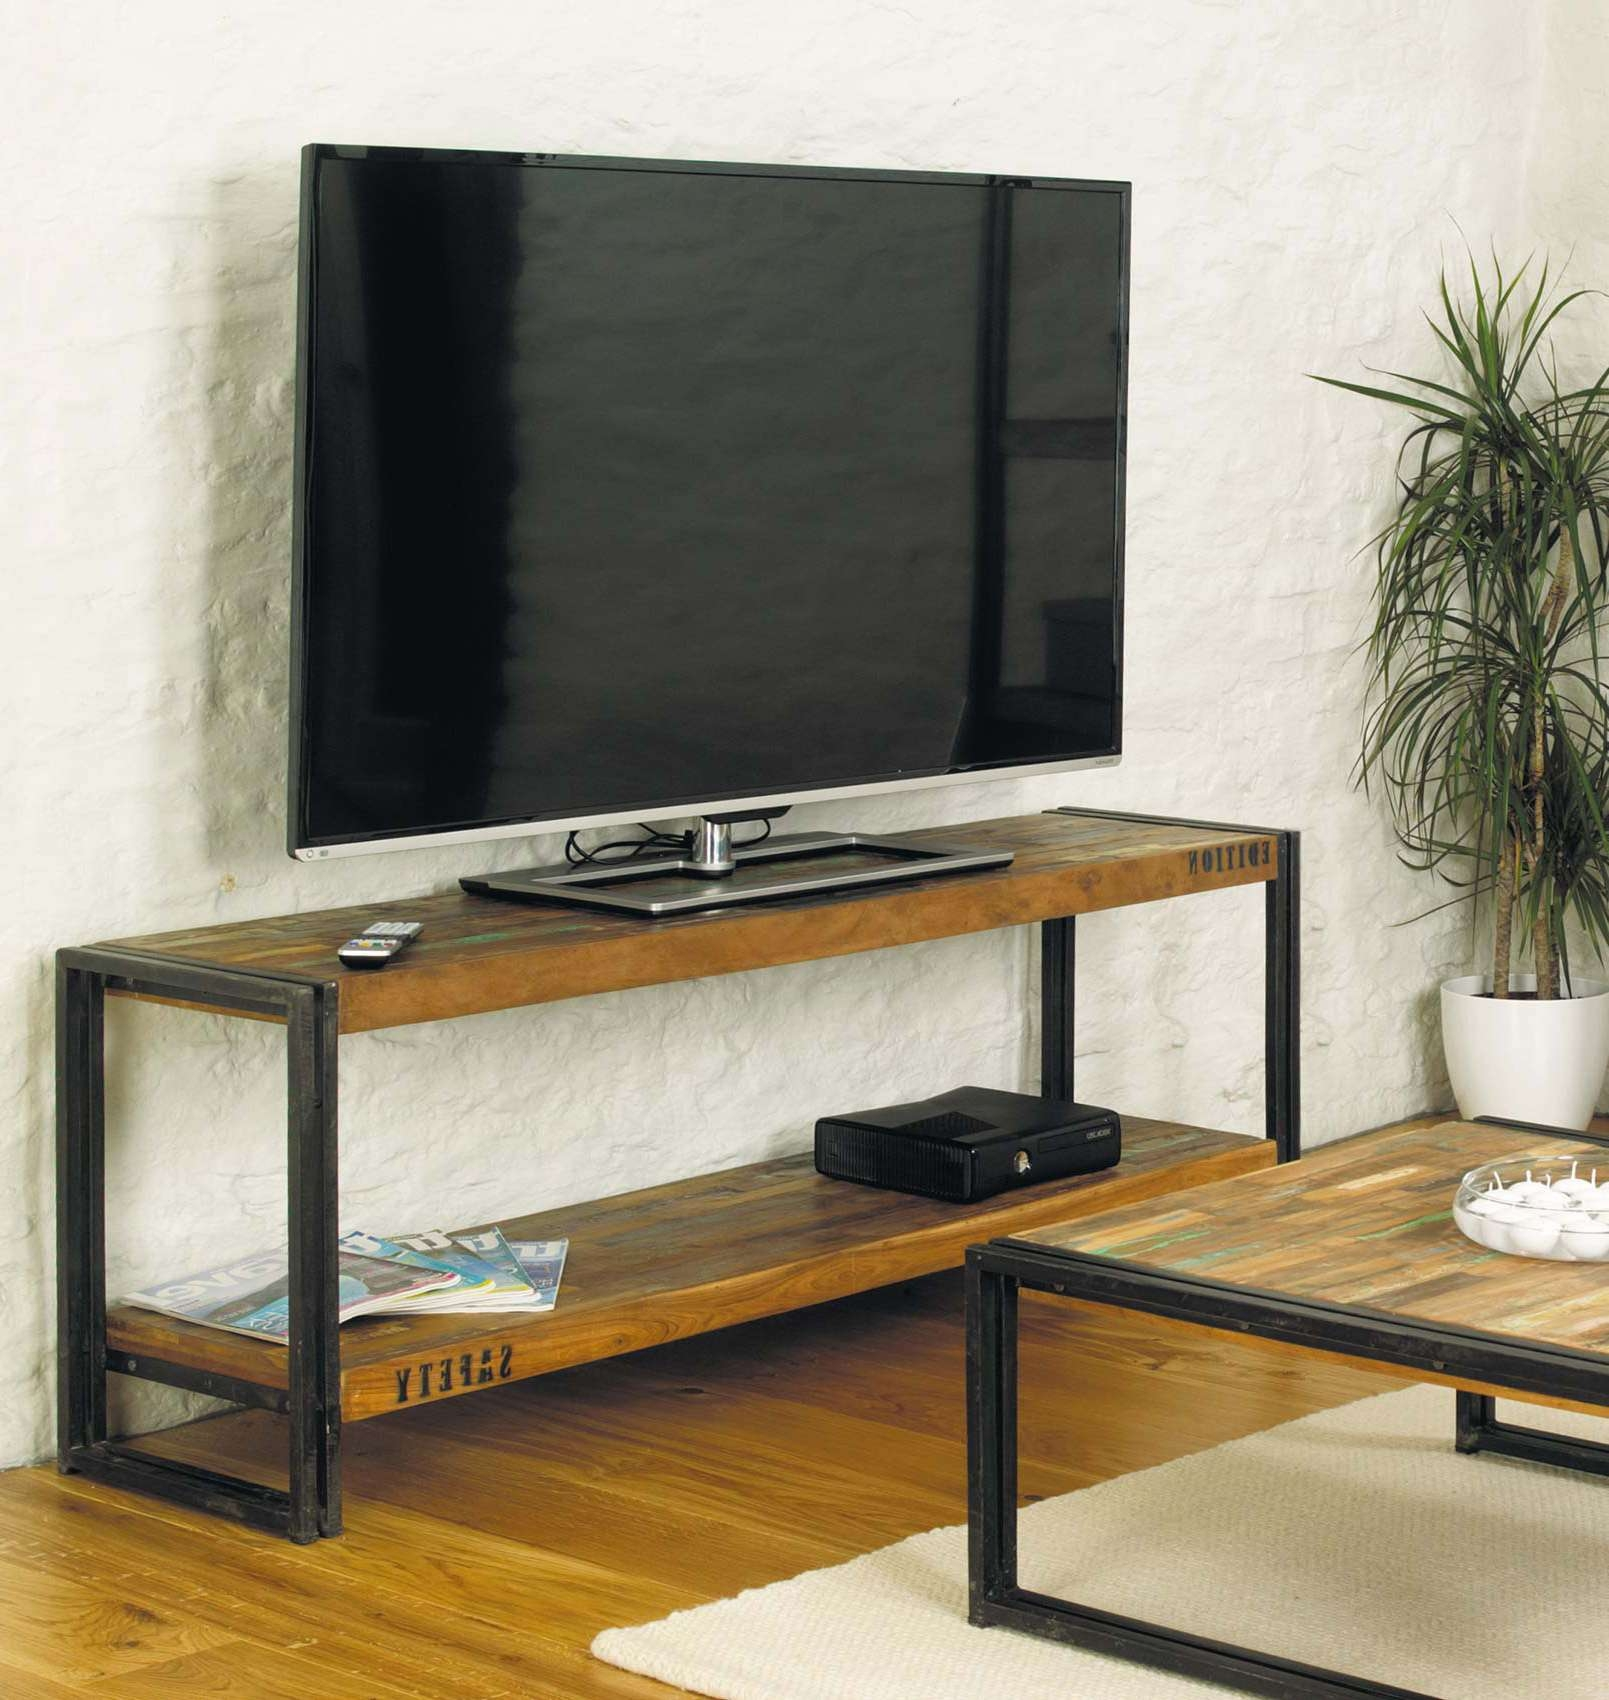 Industrial Media Cabinet Rack Tv Stand With Metal Legs And Within Metal And Wood Tv Stands (View 10 of 15)